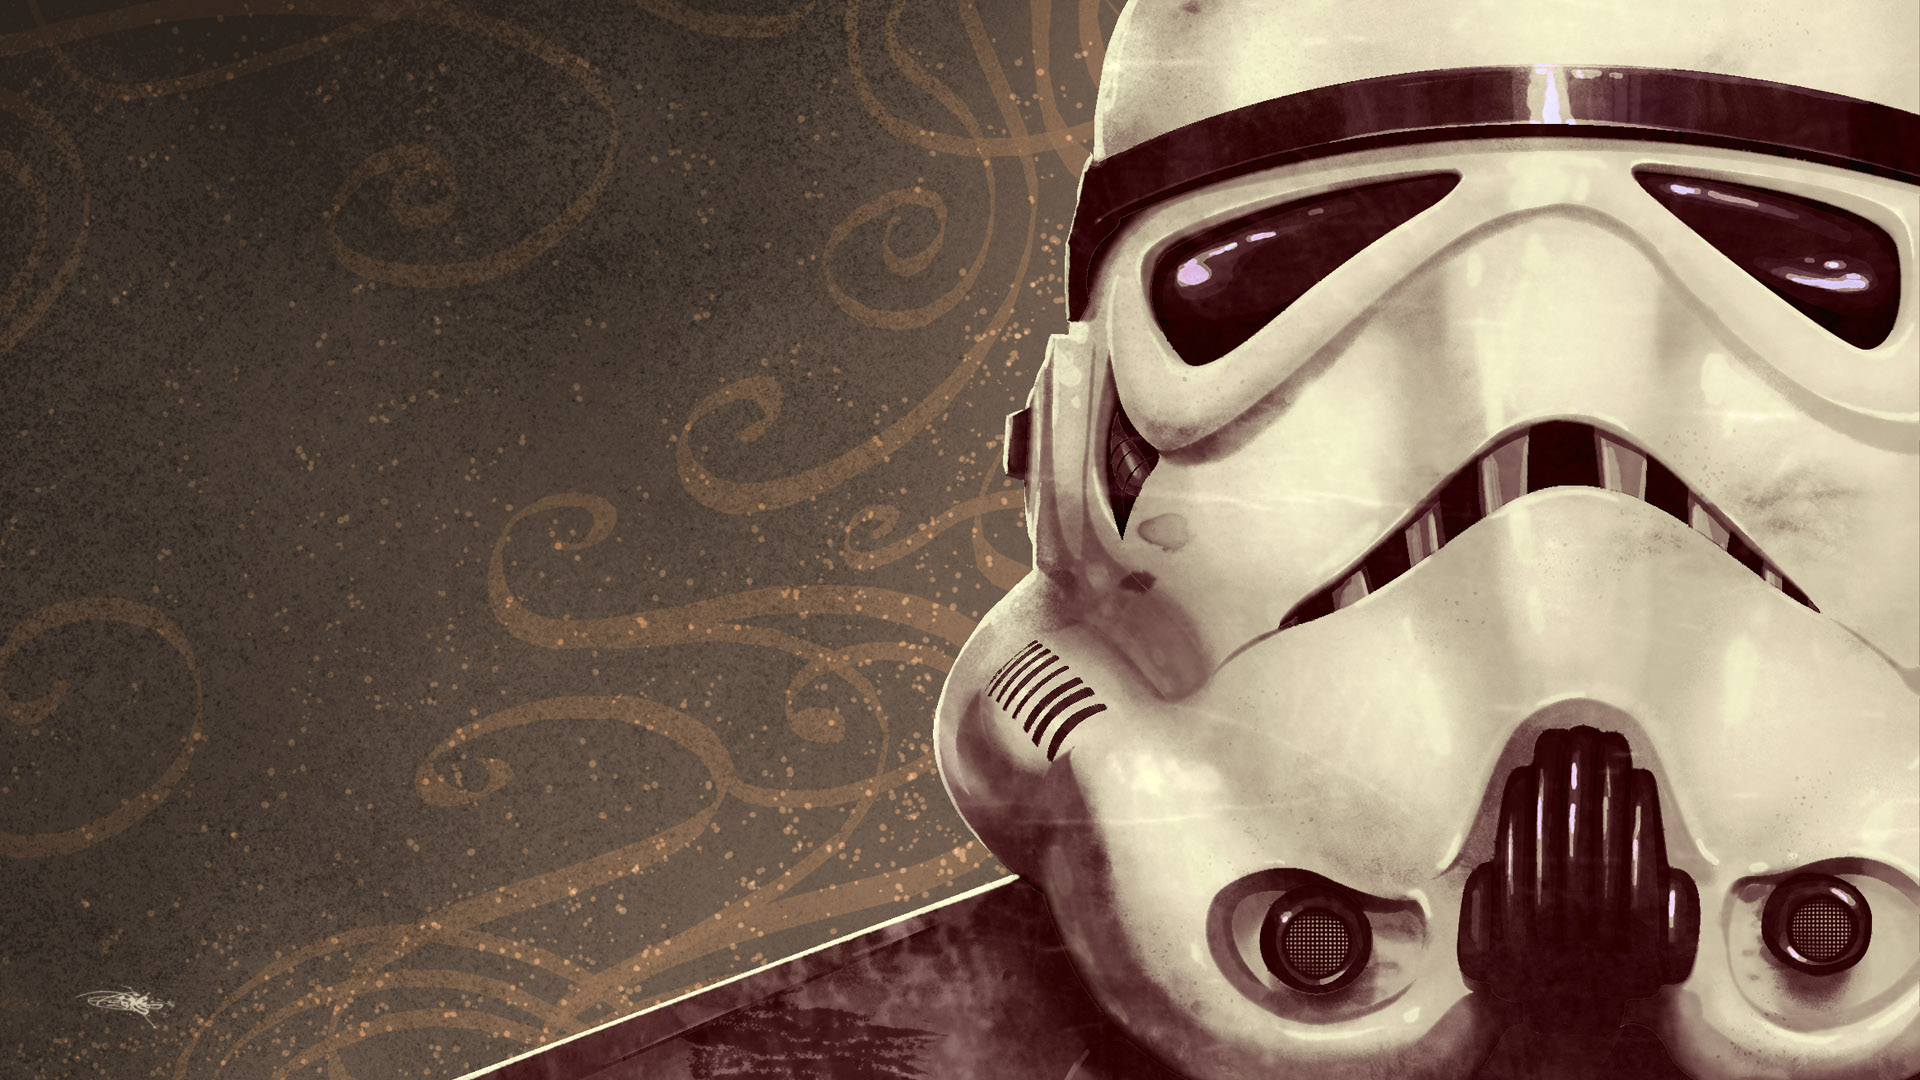 stormtrooper wallpaper star wars - photo #24